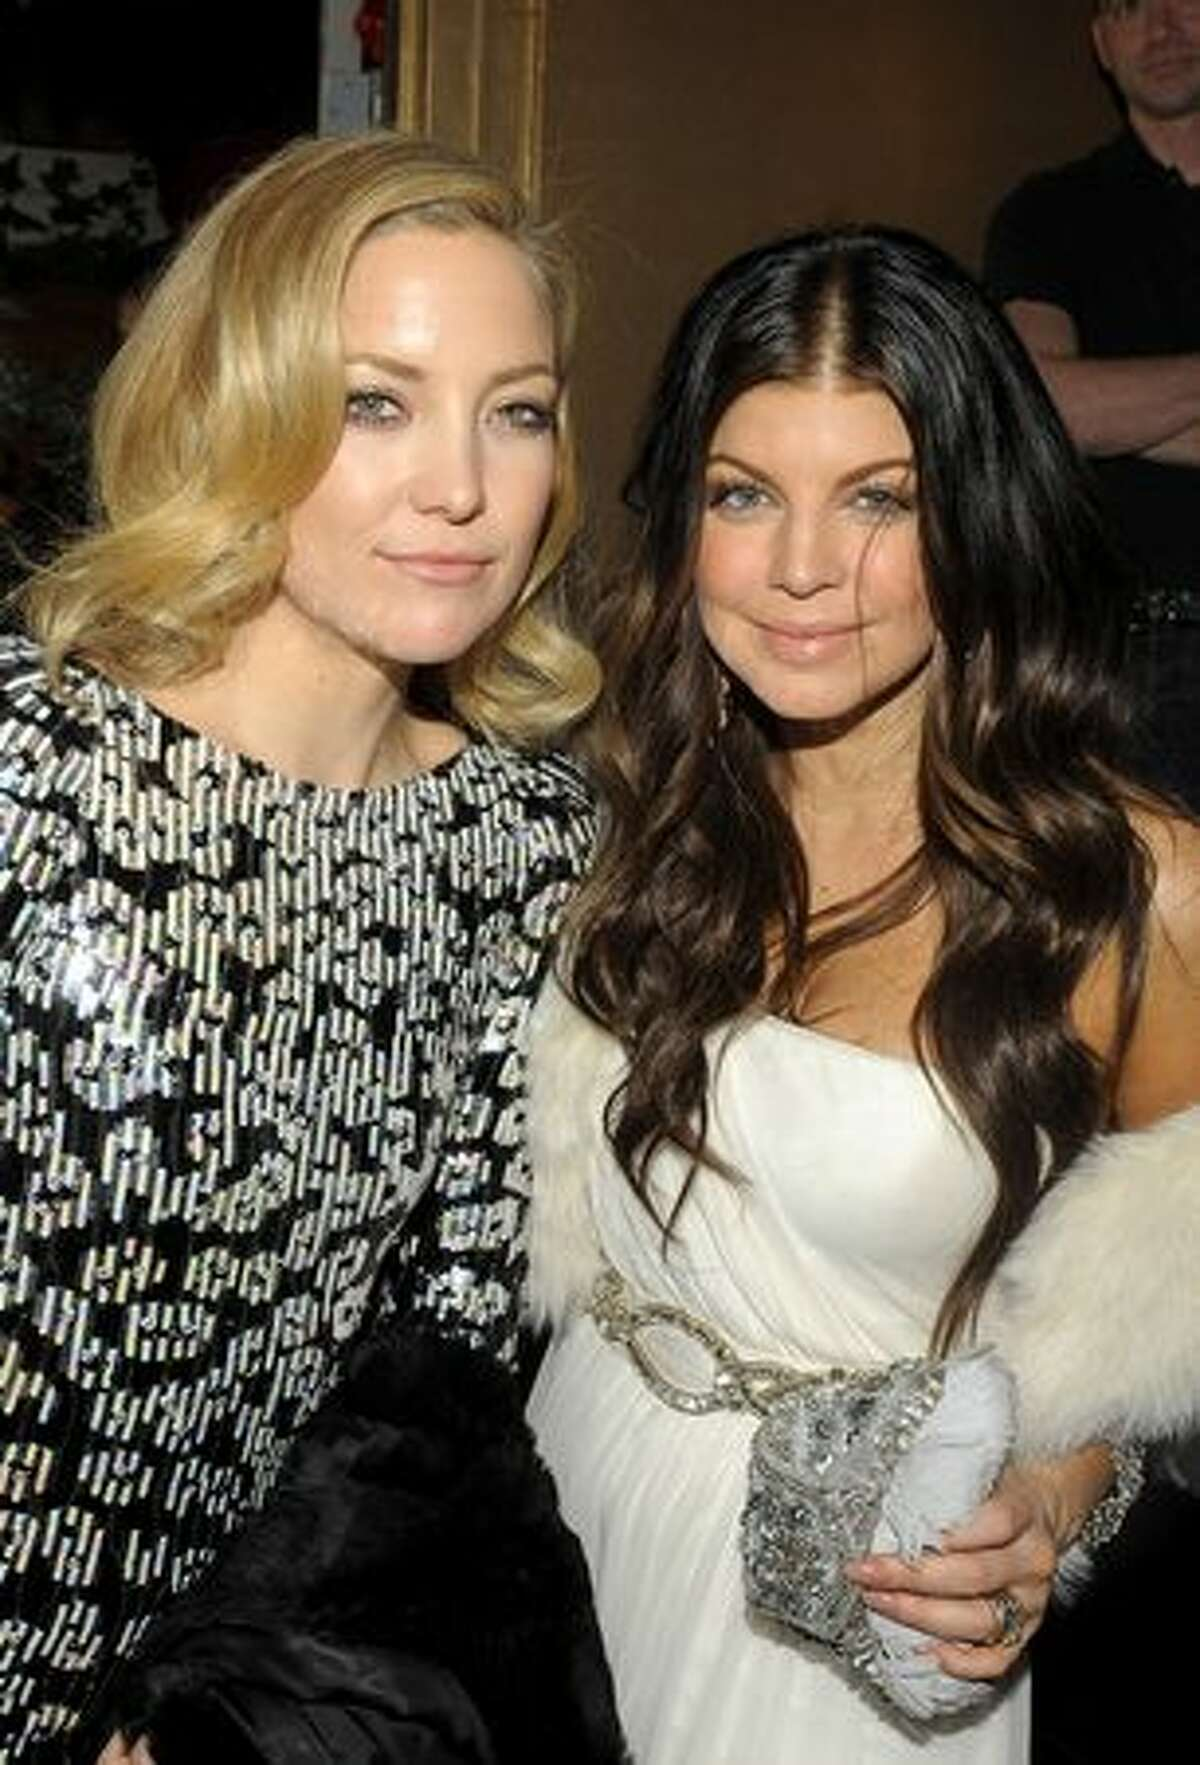 Actress Kate Hudson and singer Fergie attend the after party of the New York premiere of